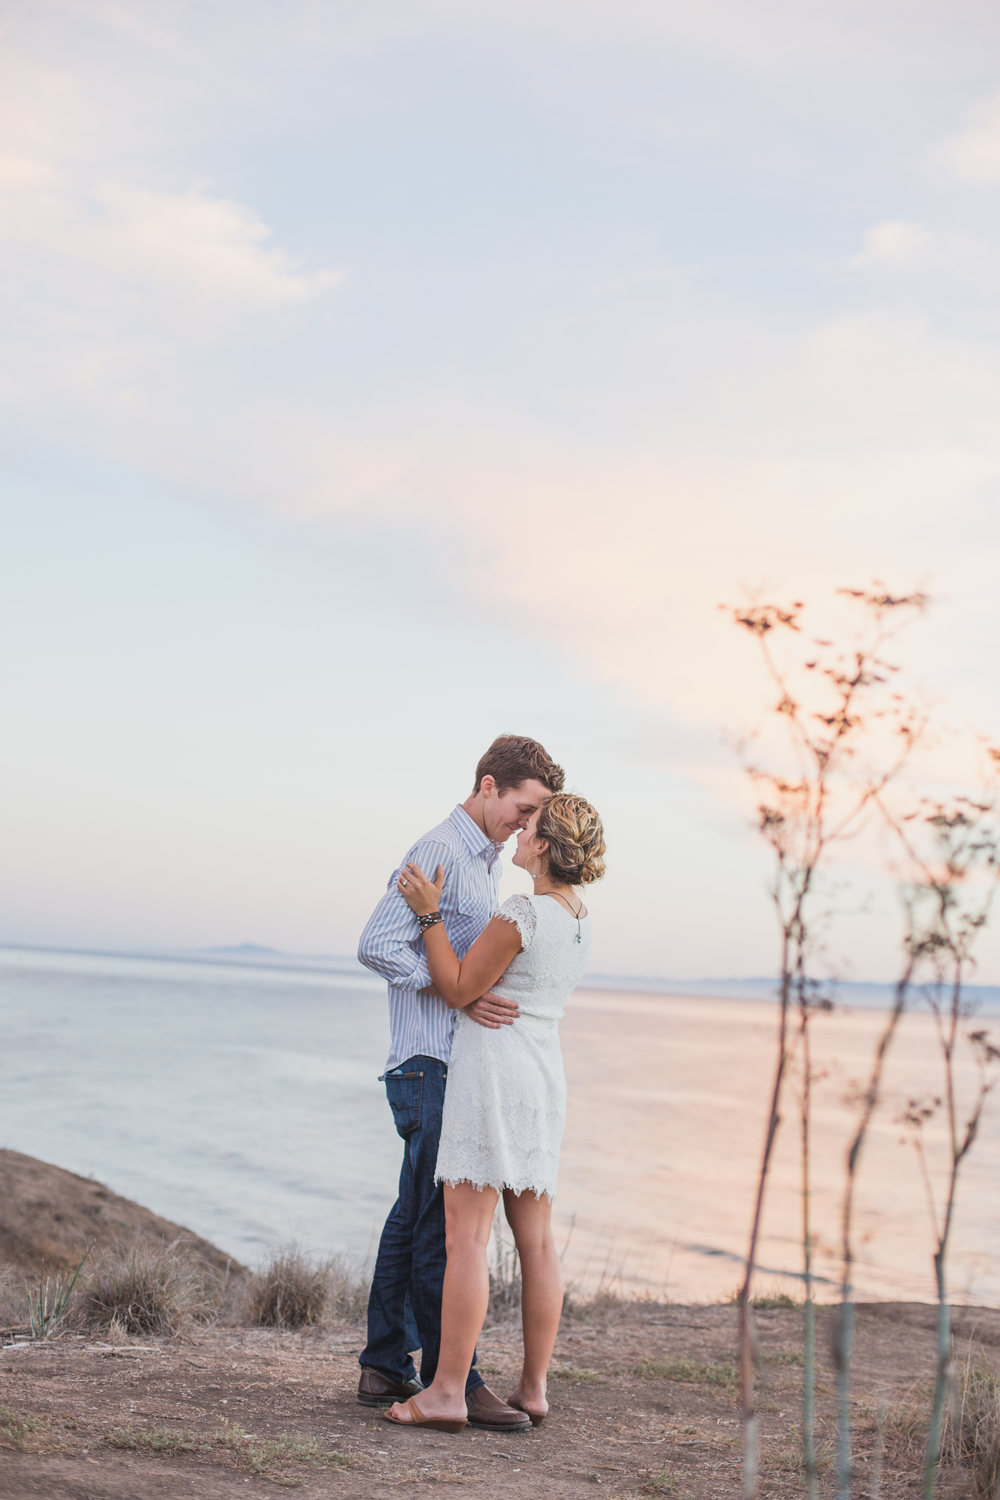 santa-barbara-elopement-proposal-propose-ellwood-bluff-wedding-planner-coordinator (26).jpg